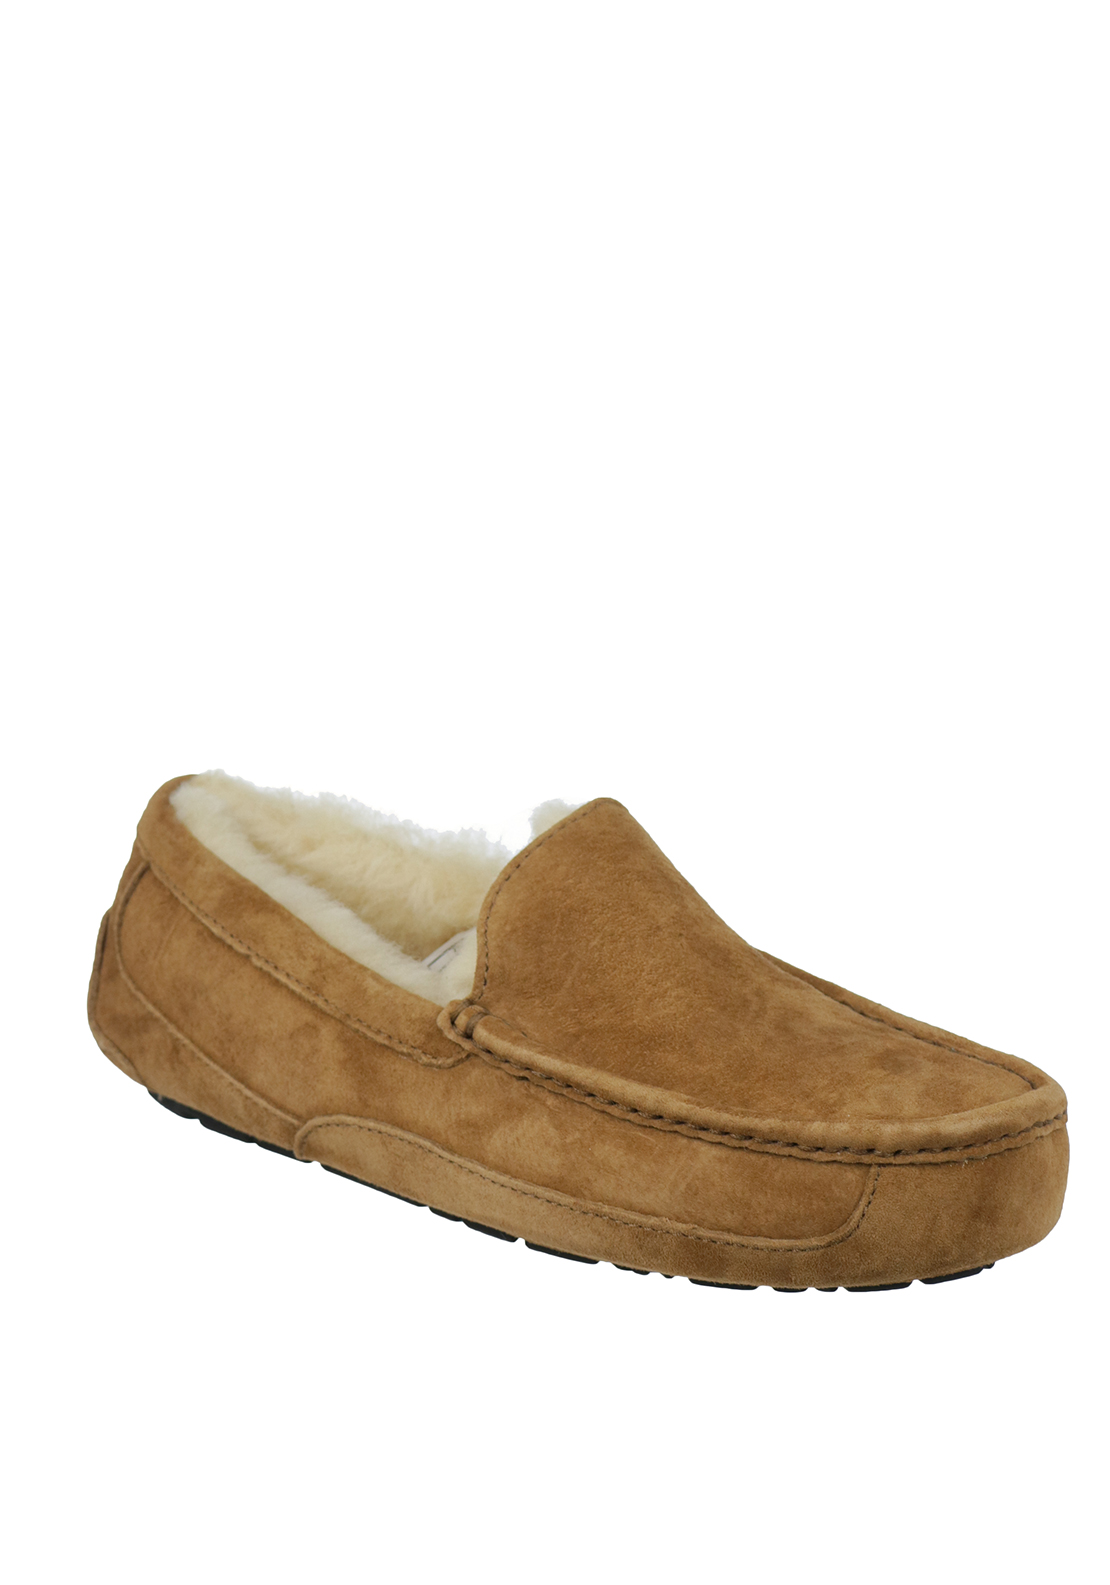 Ugg Australia Mens Ascot Suede Slippers, Chestnut